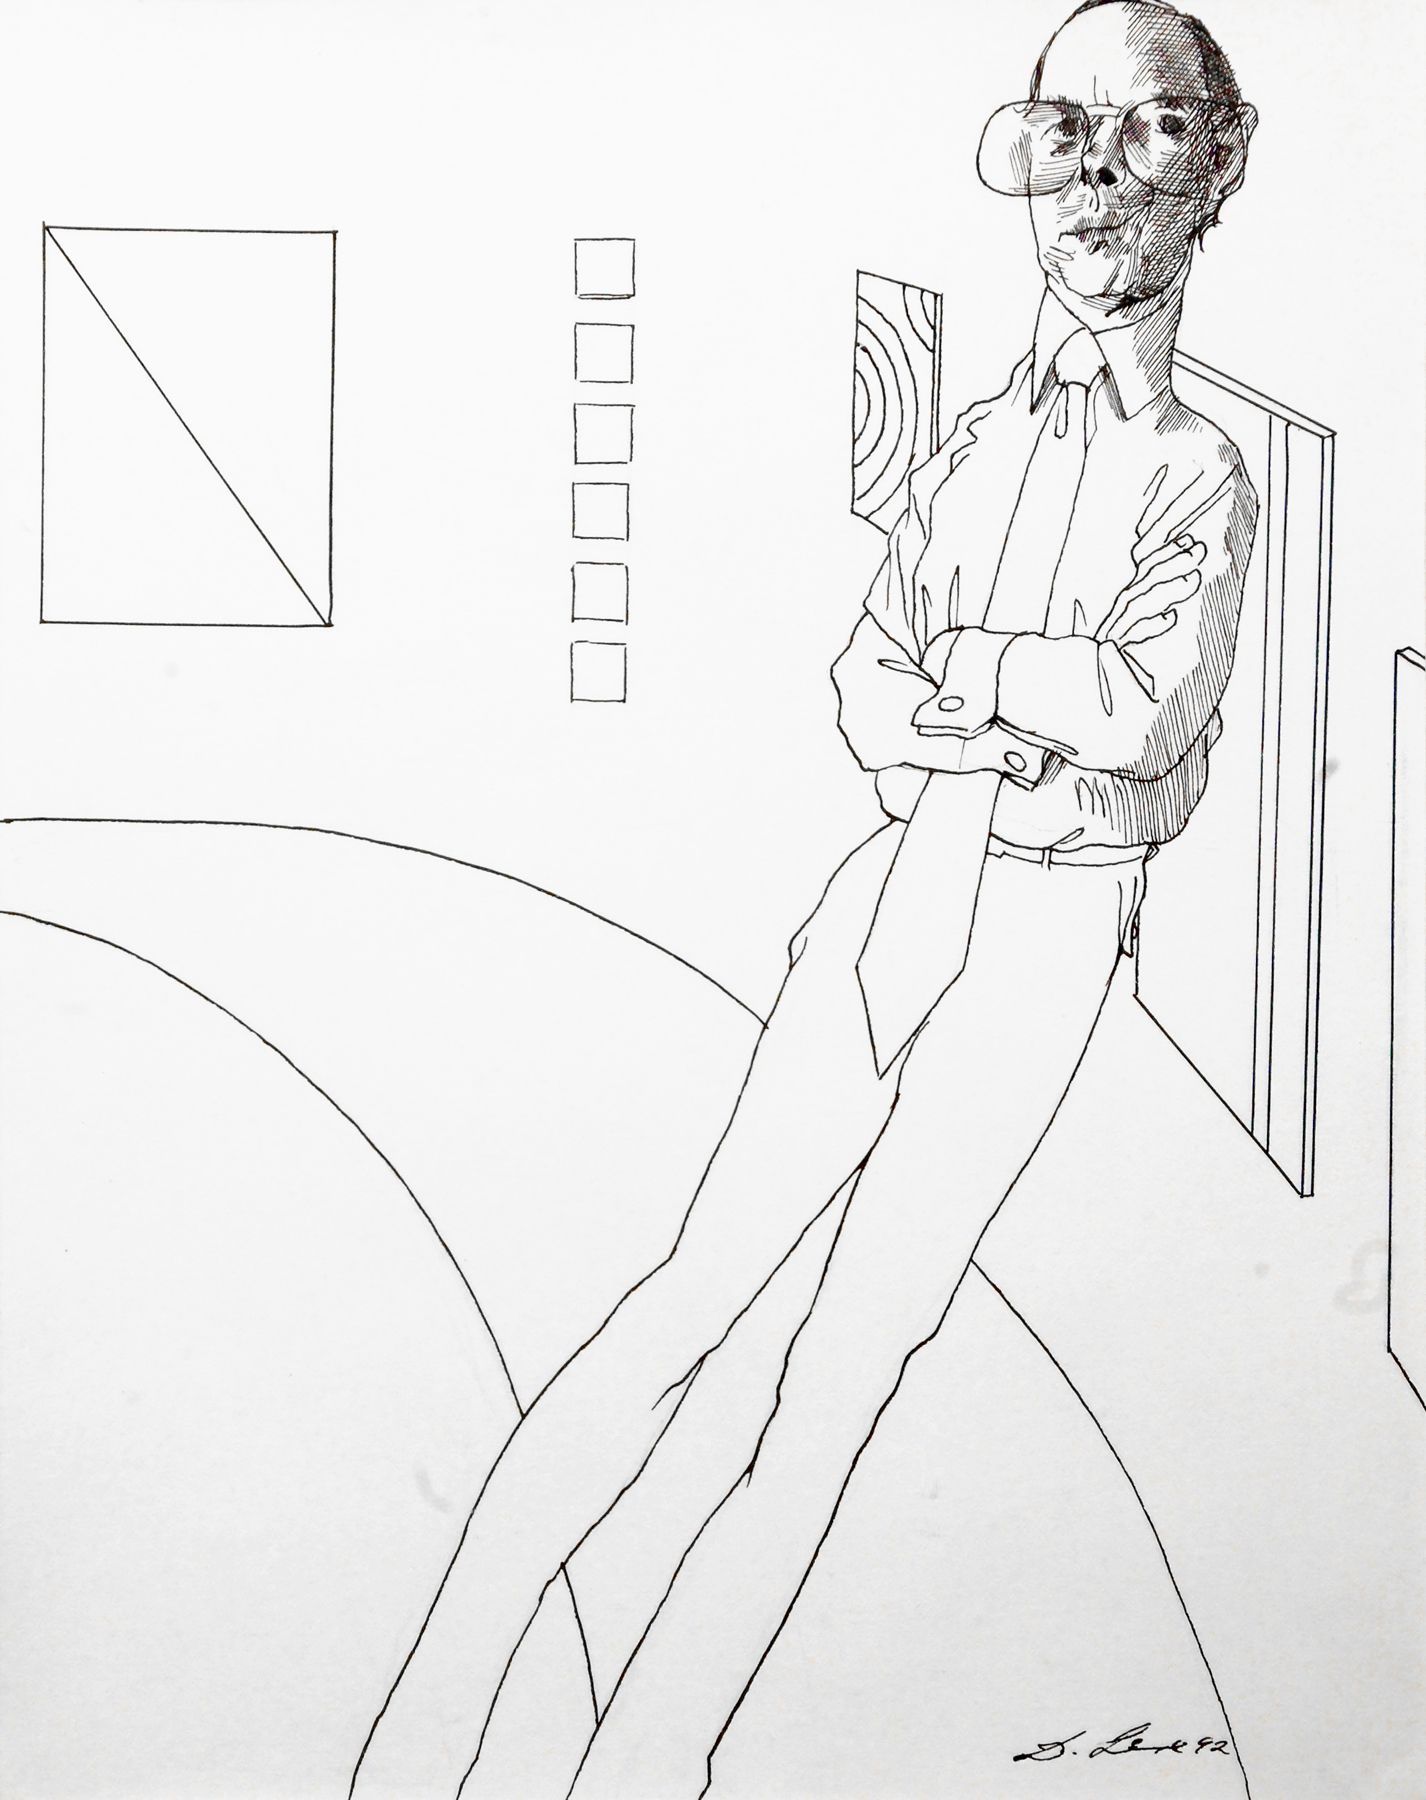 David Levine, Thomas Krens, 1992, pen and ink on paper, 14 x 11 inches